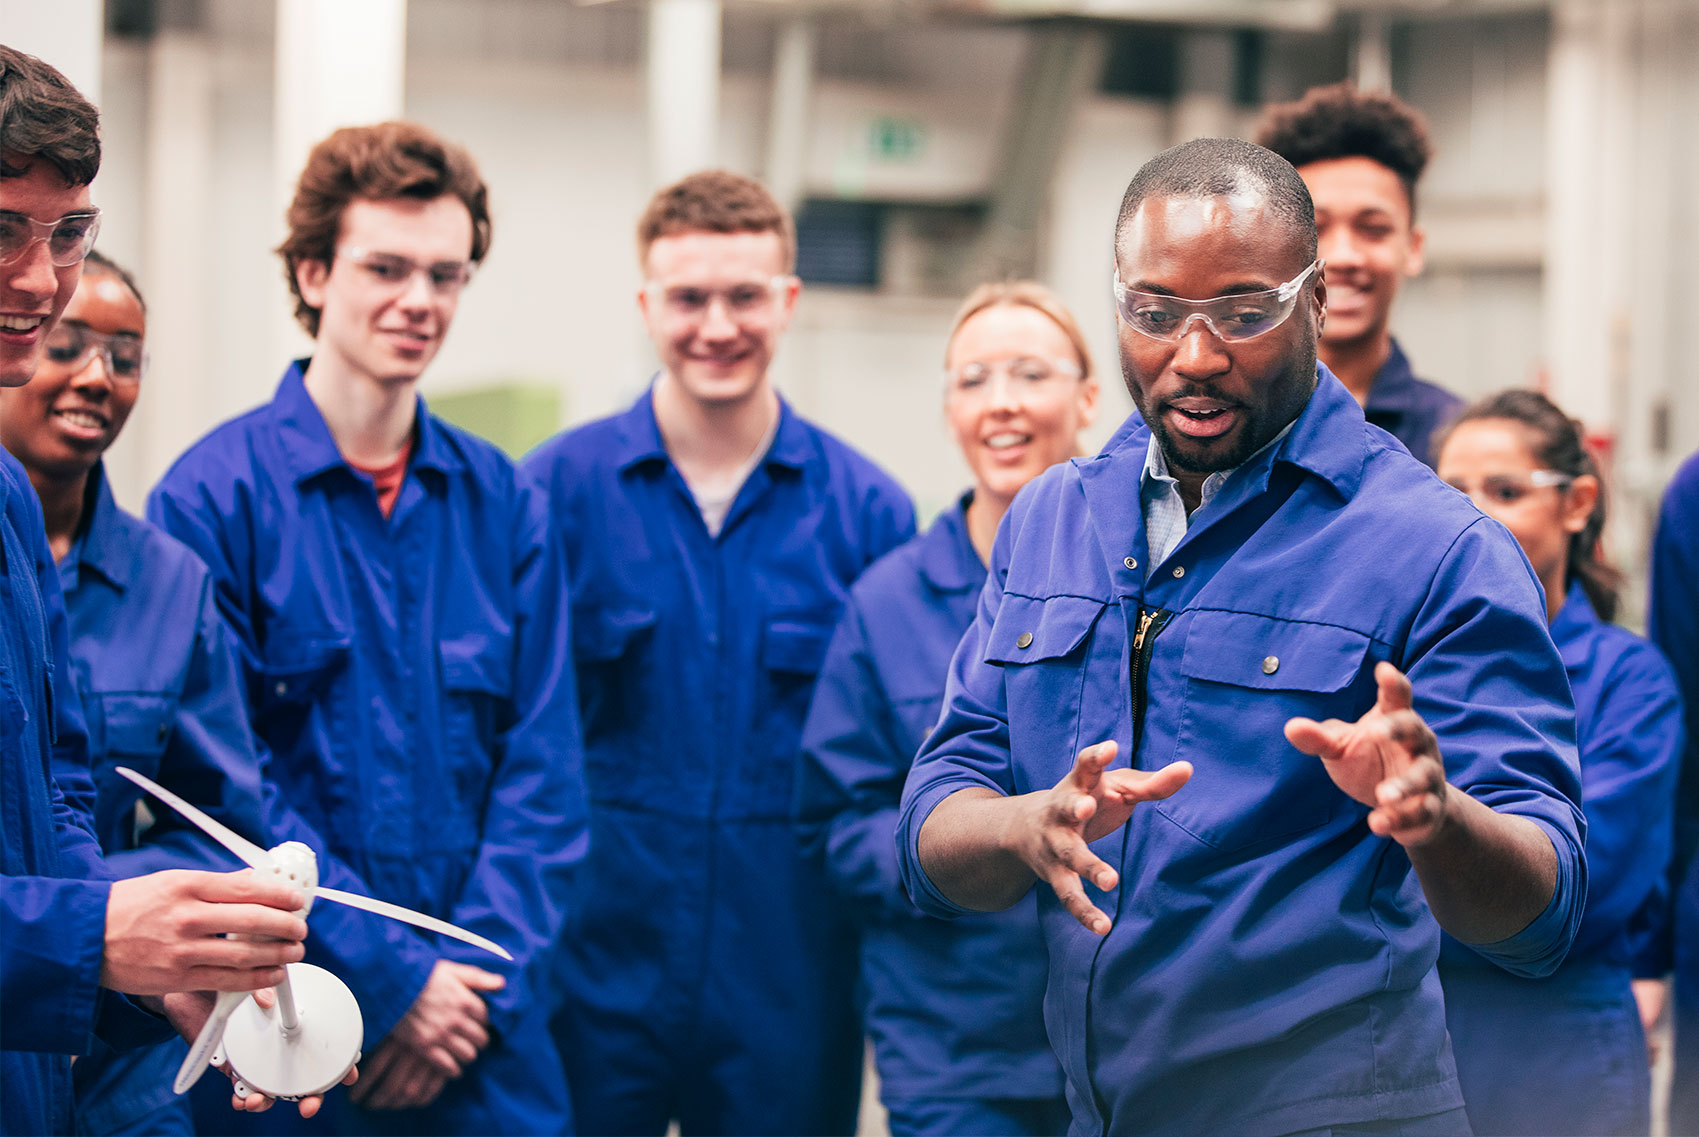 A diverse group of young adults are in an industrial setting. They watching as a middle-aged man is demonstrating something off camera.